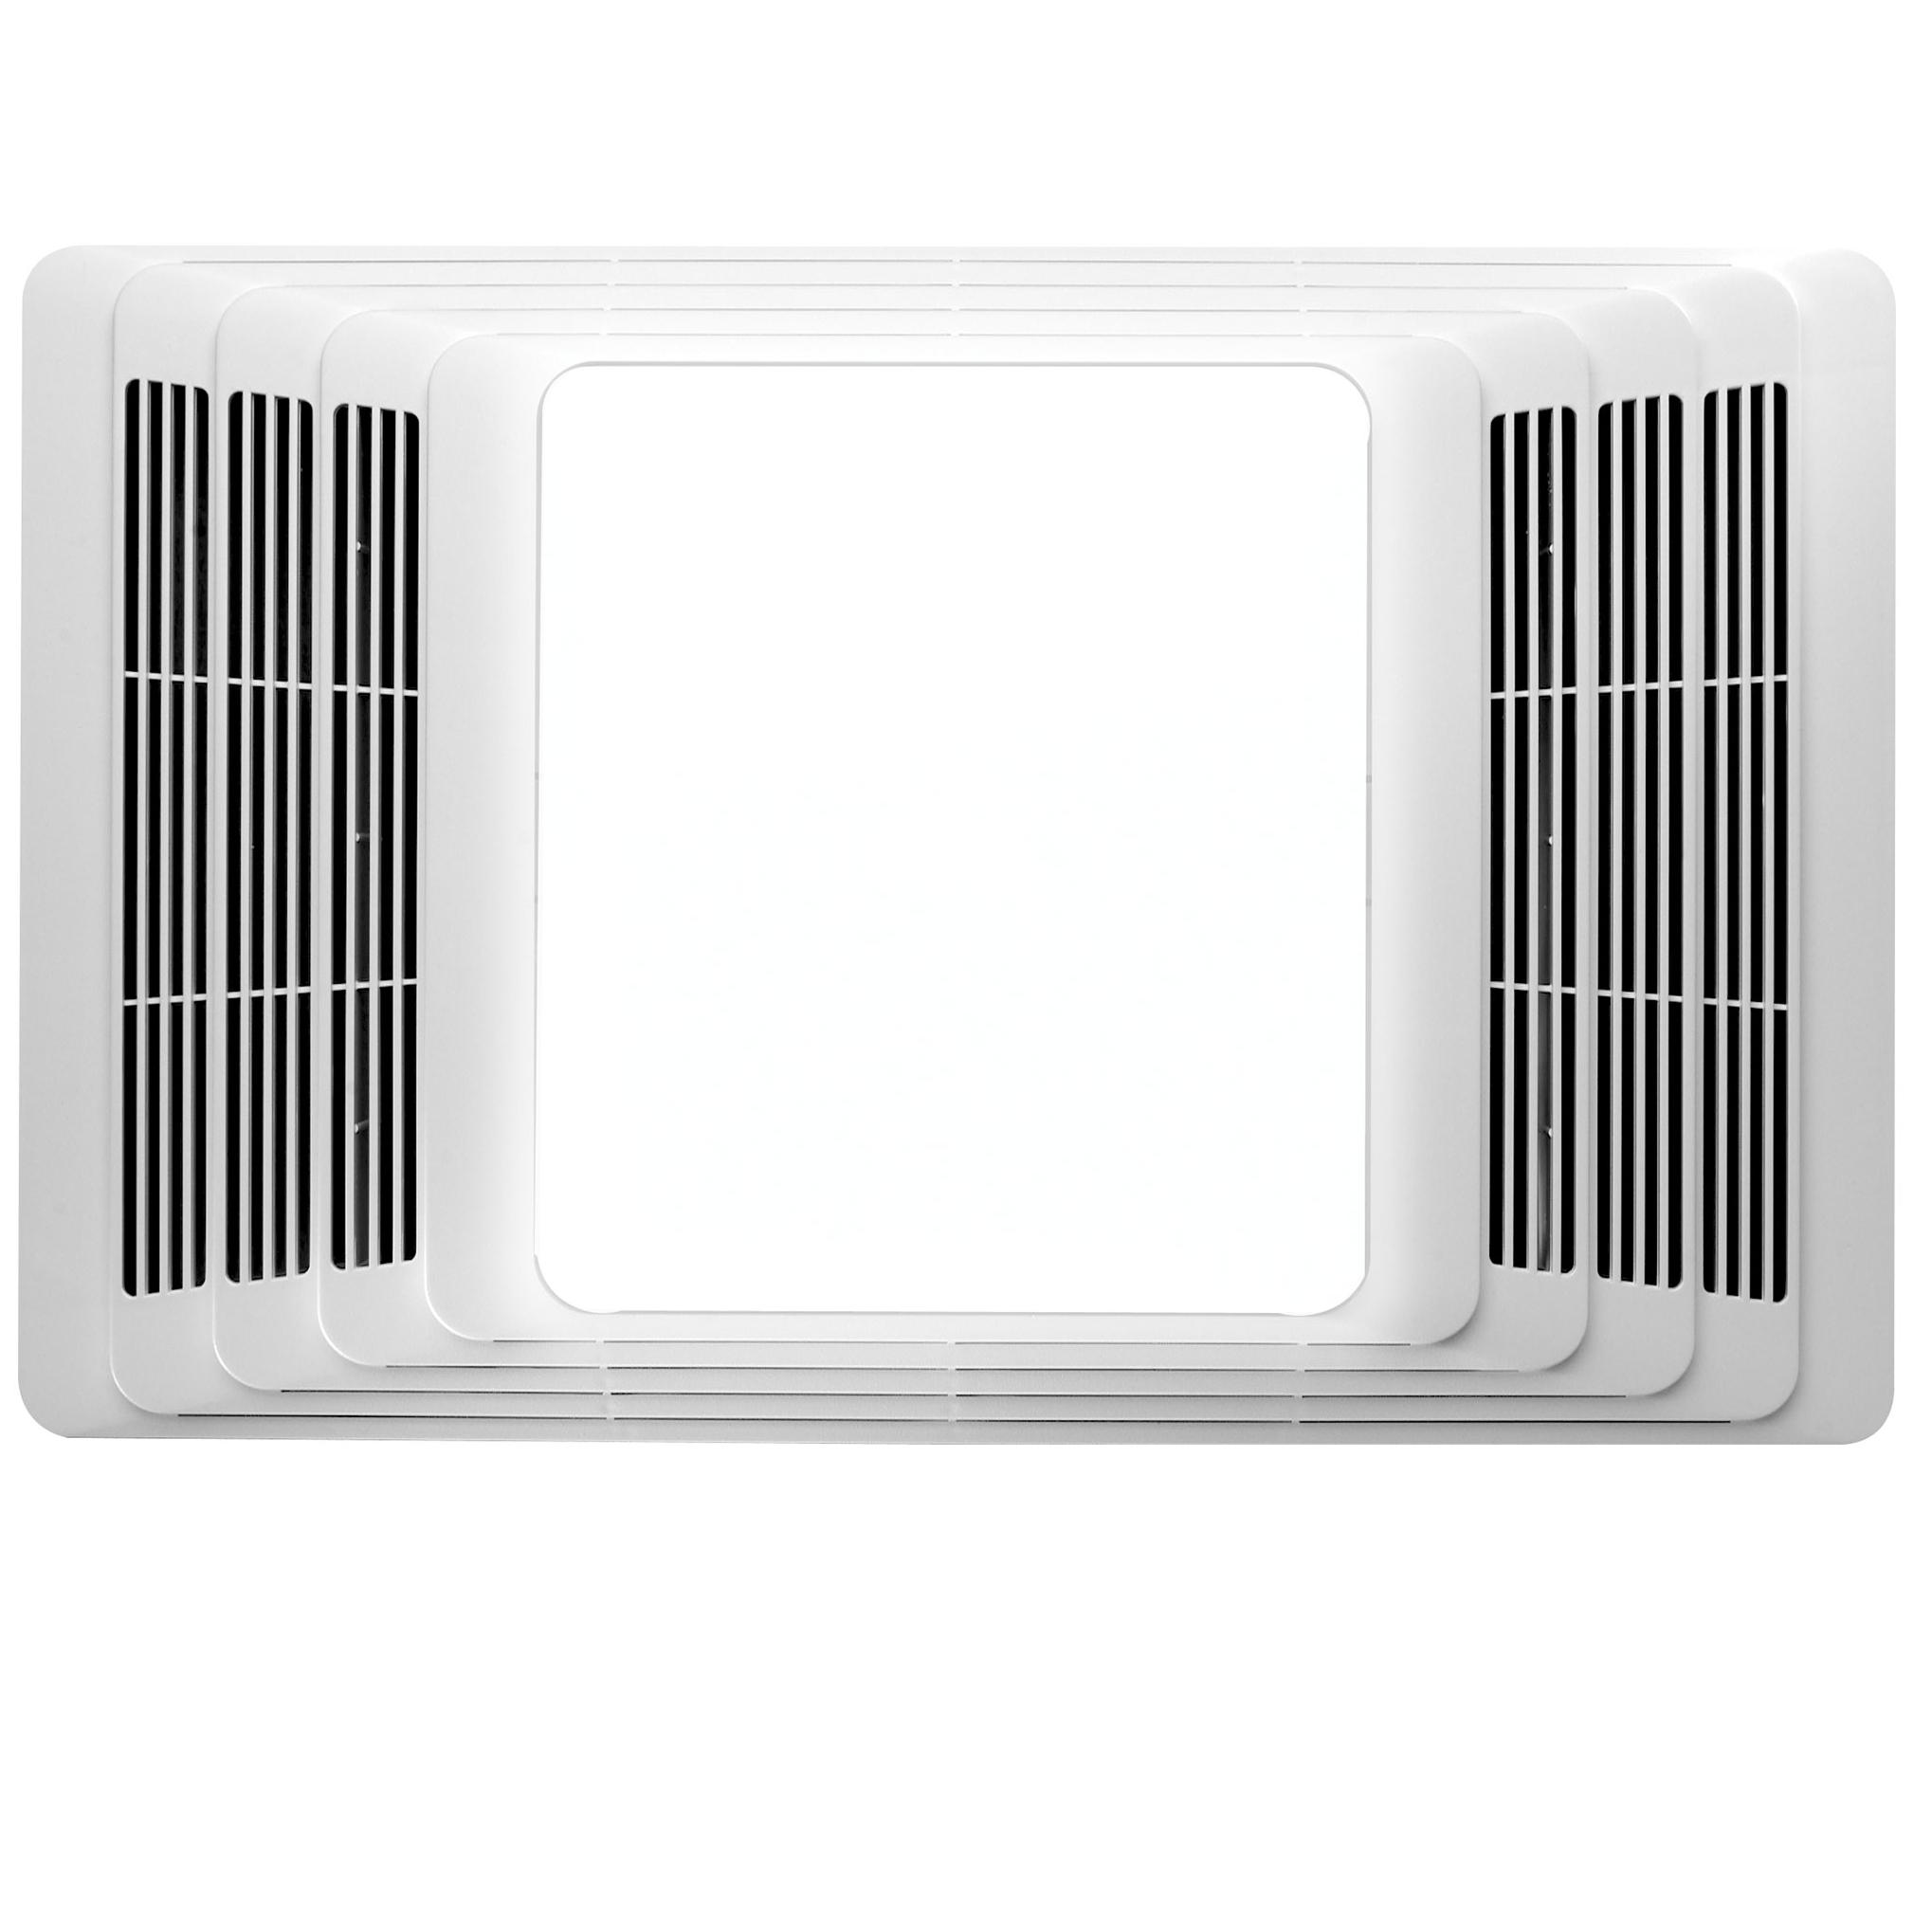 Broan 100 Cfm Ceiling Exhaust Fan With Light 696: Broan 696 Fan And Light With Acoustic Insulation, 100 CFM